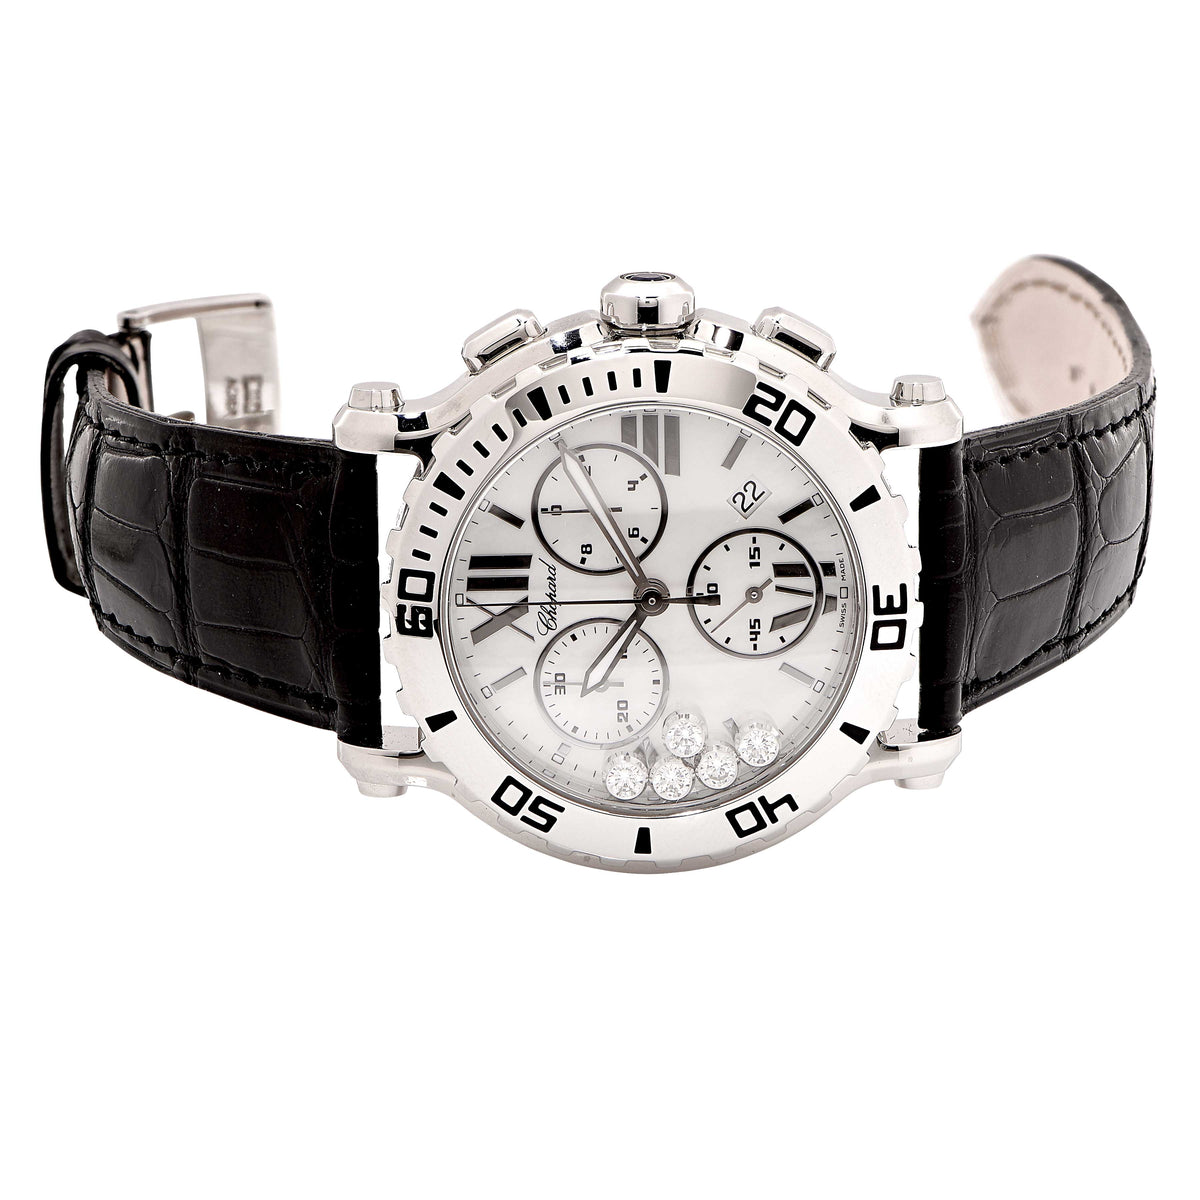 New Chopard Stainless Steel Happy Sport Chronograph Quartz Wristwatch